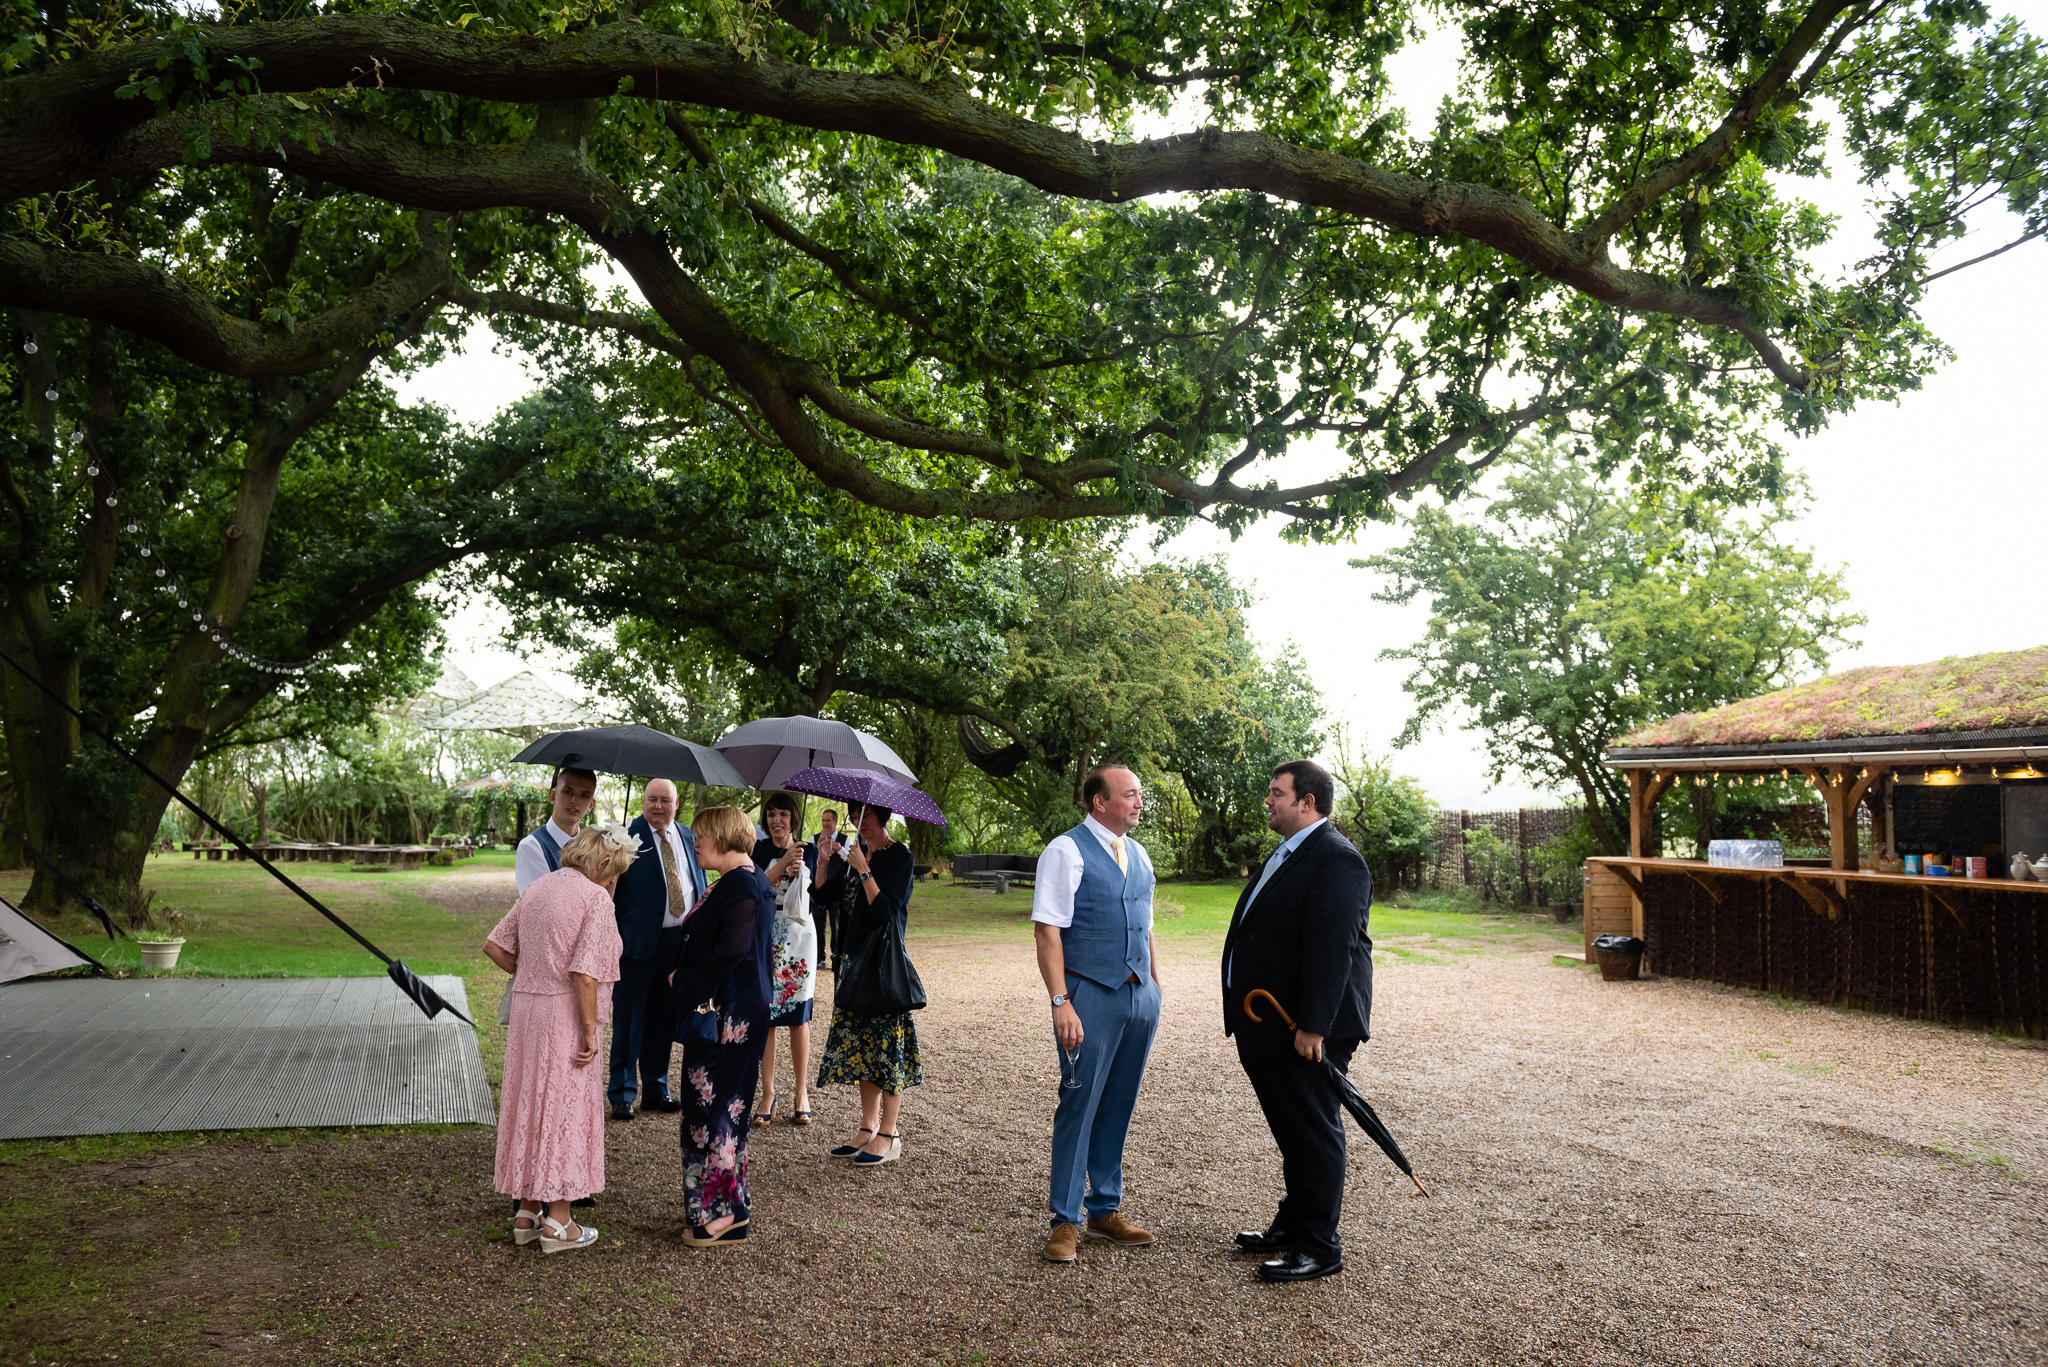 The groom greet wedding guests as they arrive at the Oak Grove